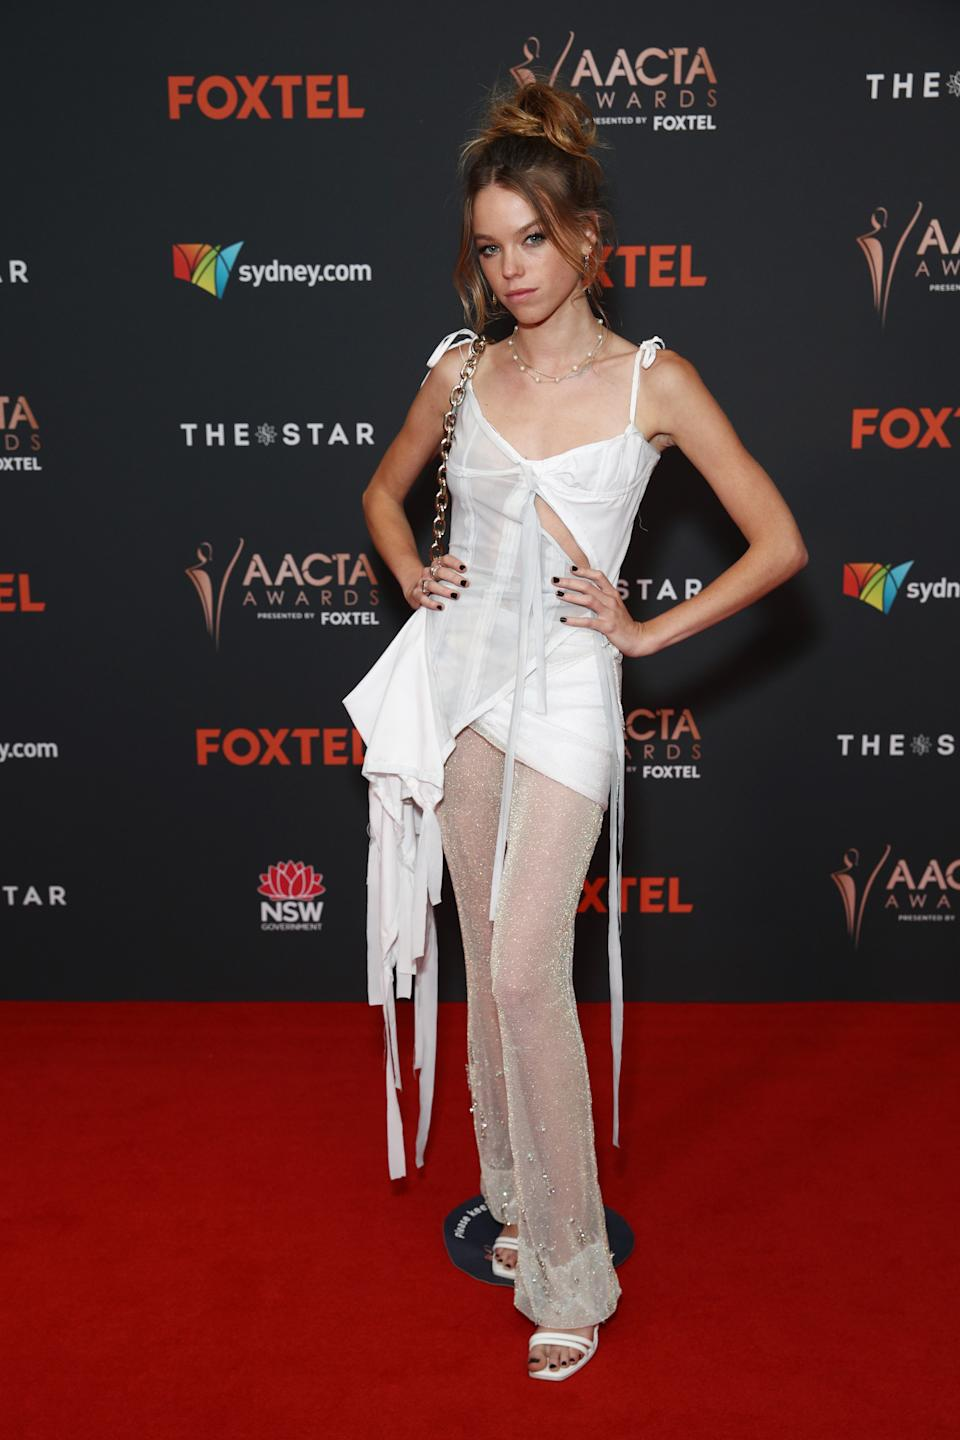 Milly Alcock arrives ahead of the 2020 AACTA Awards presented by Foxtel at The Star on November 30, 2020 in Sydney, Australia